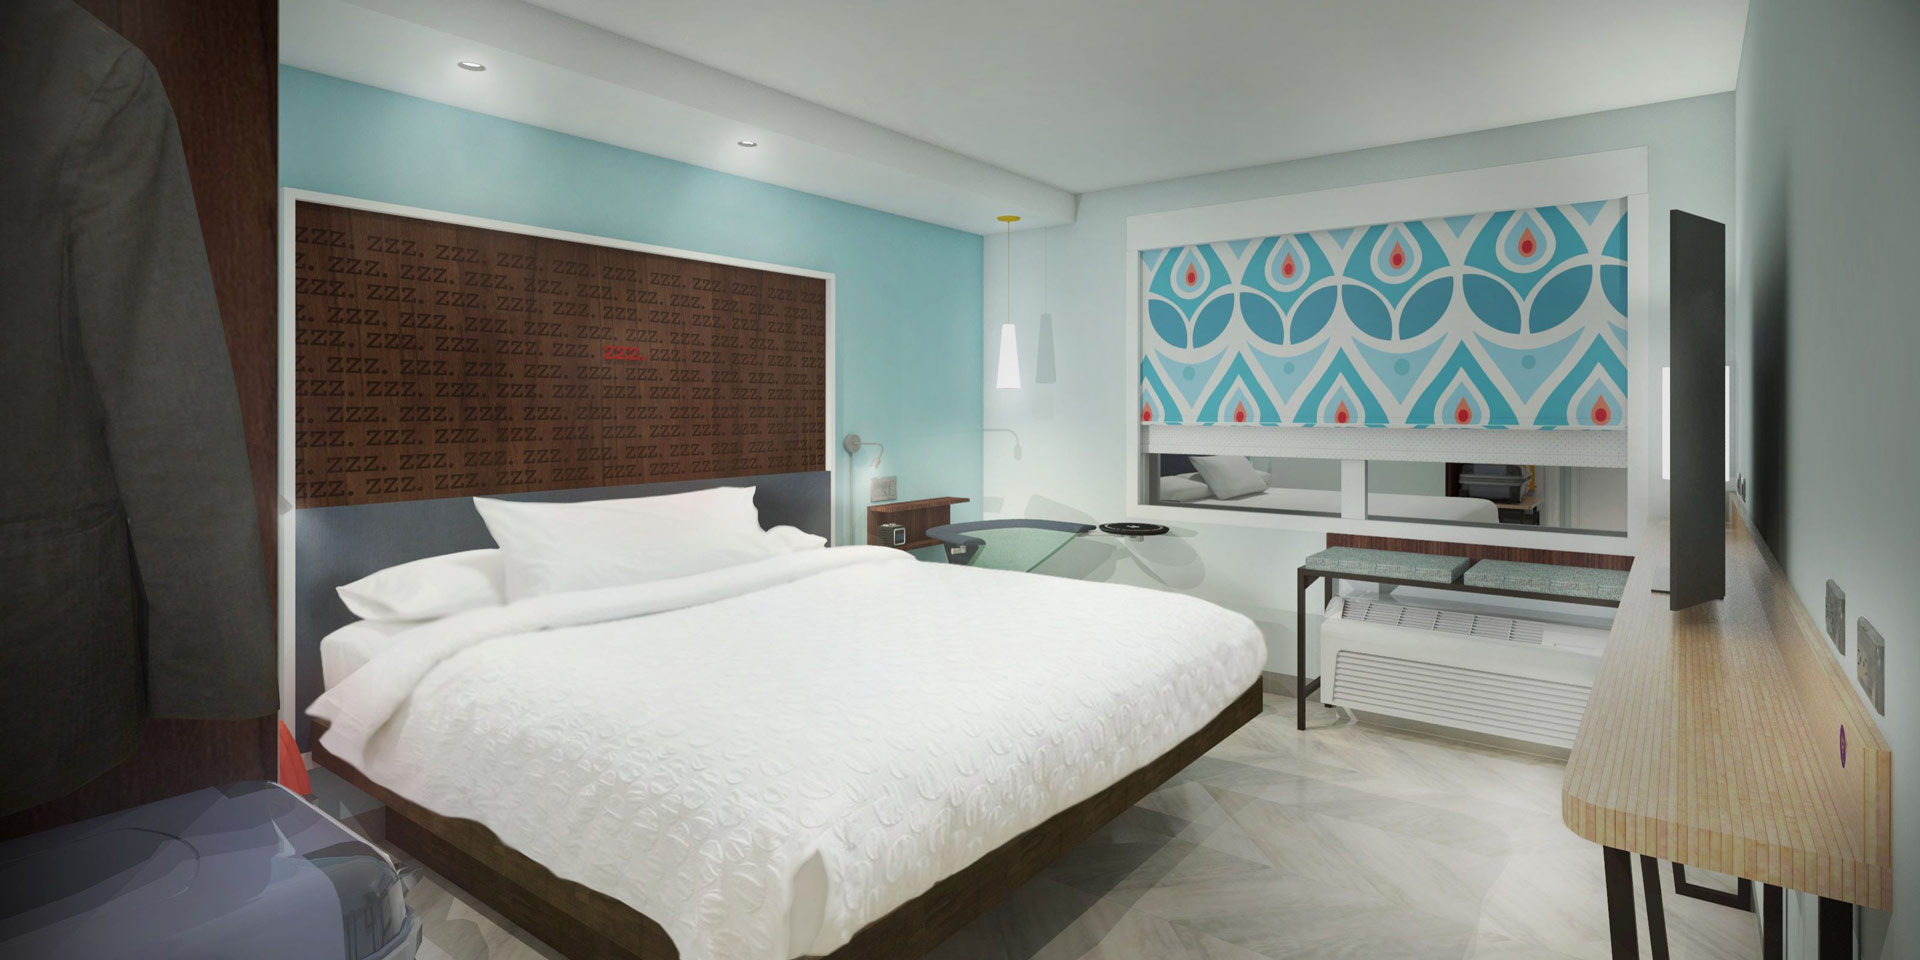 Hilton's Tru brand opens in three new US states